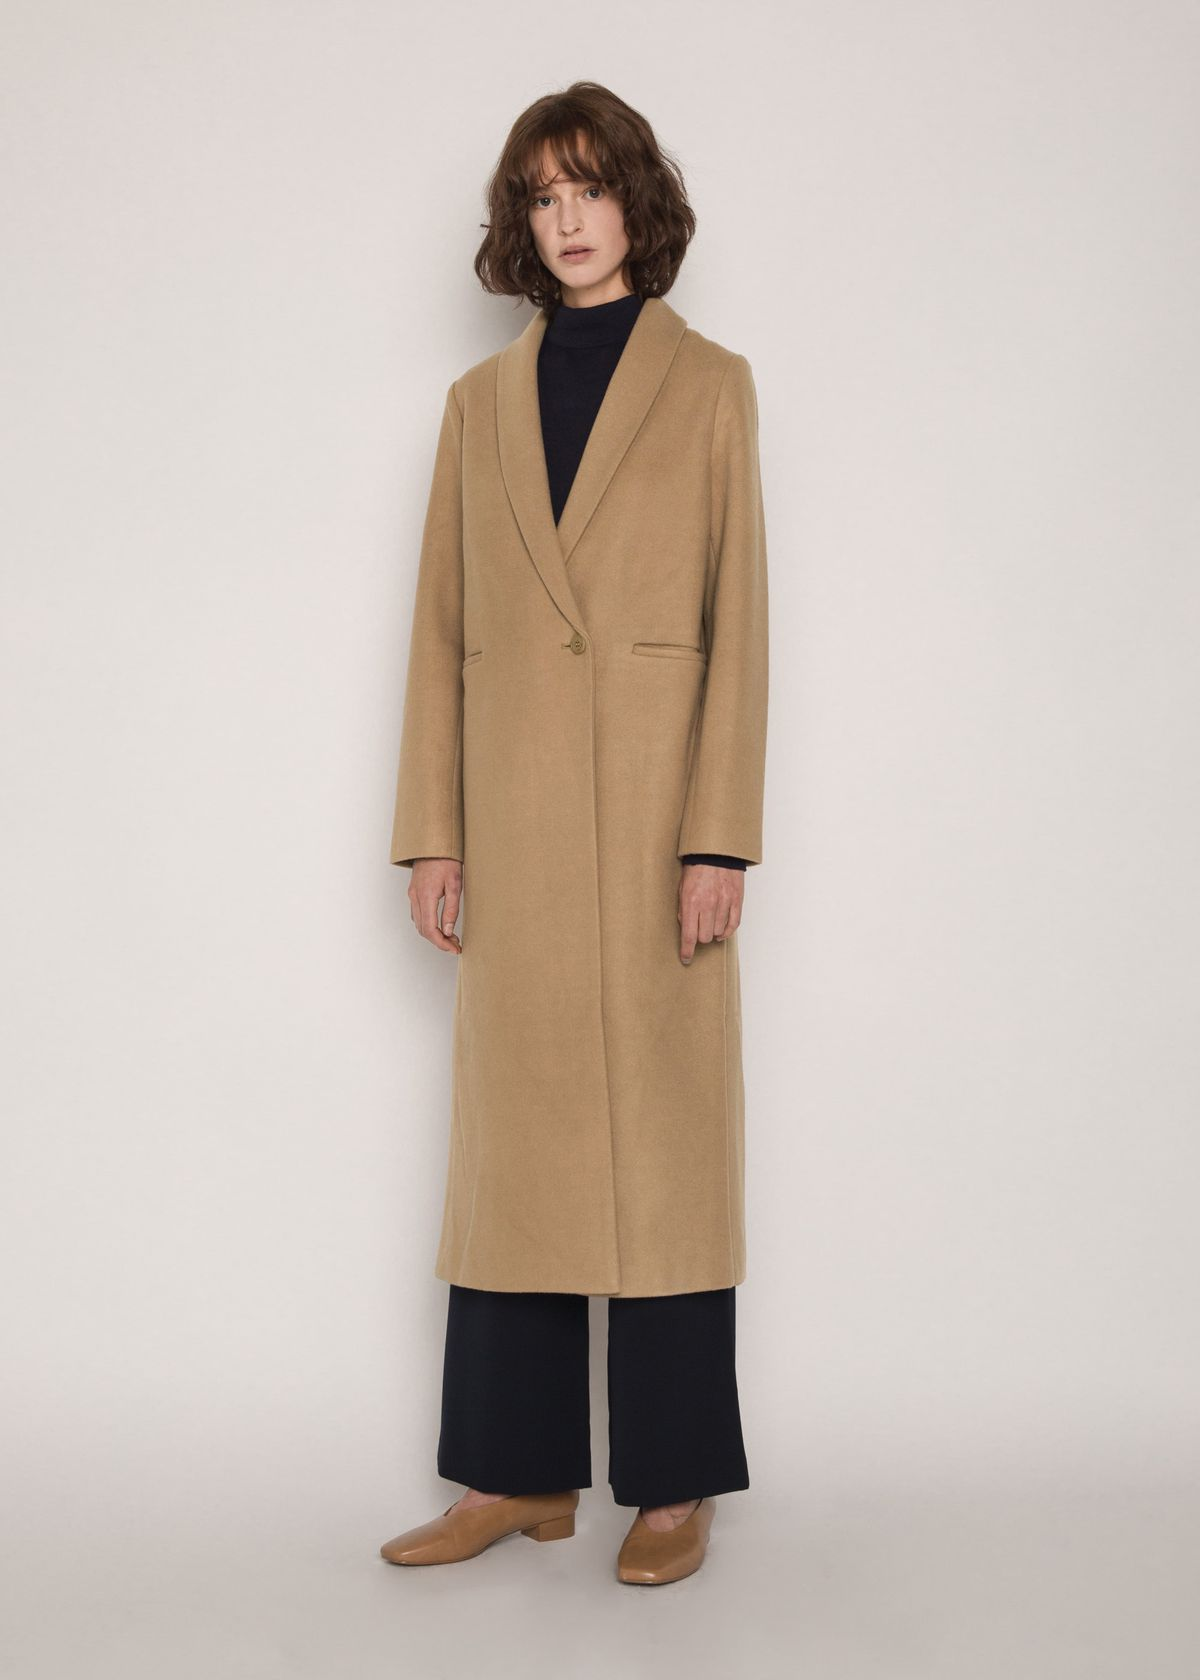 7d0ebd1c7fb Where to Buy a Really Good Coat - Racked